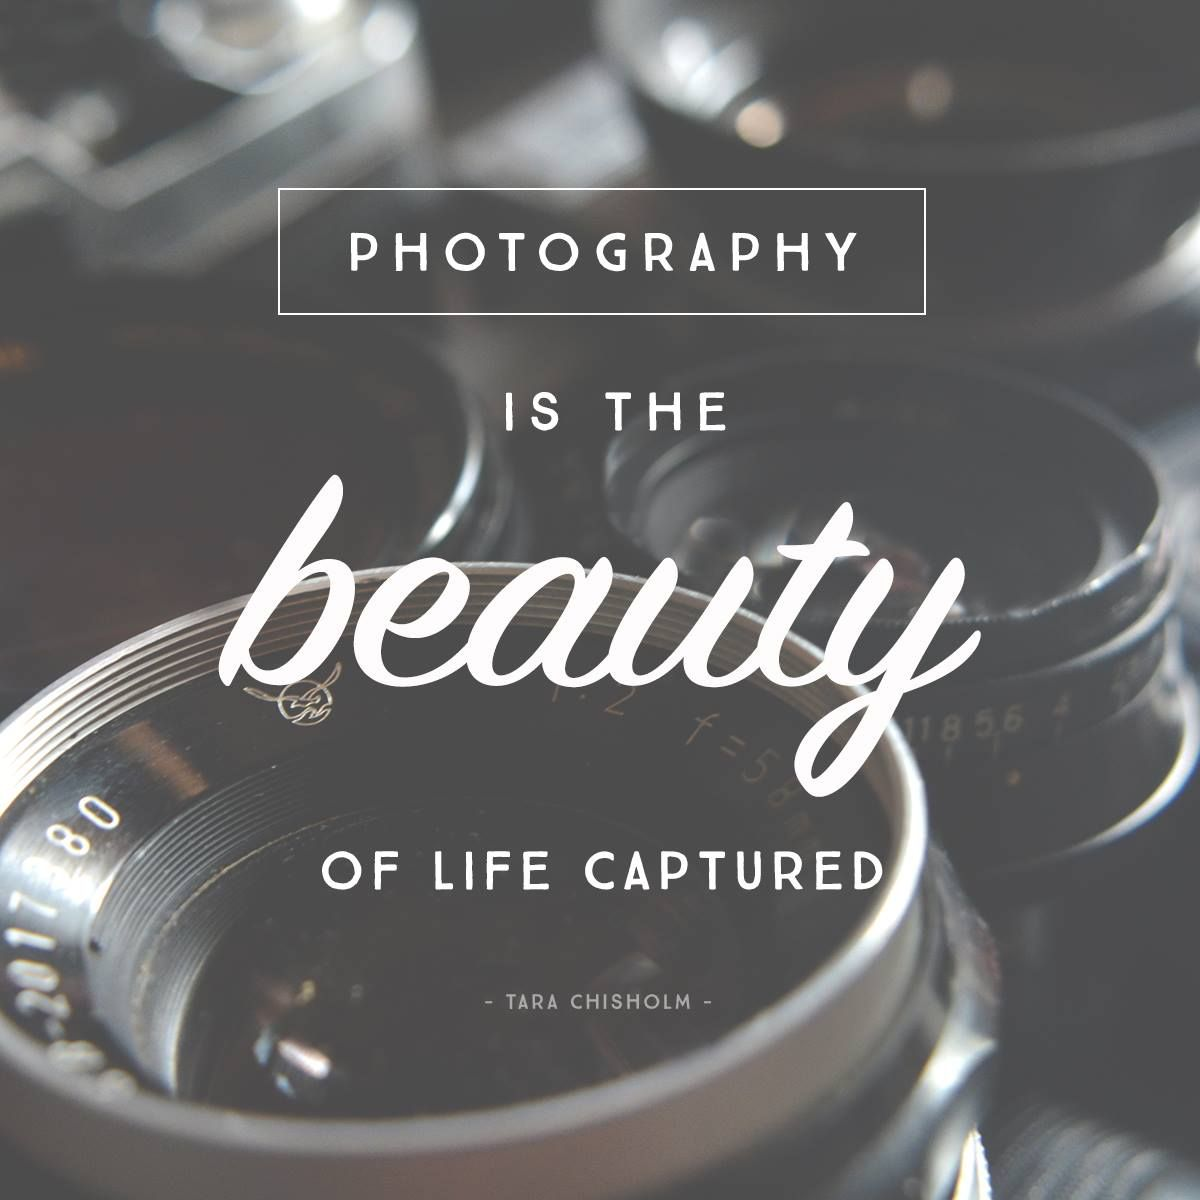 Photography Quote 12 Quotes Inspire Photography Journey  Photography Photography